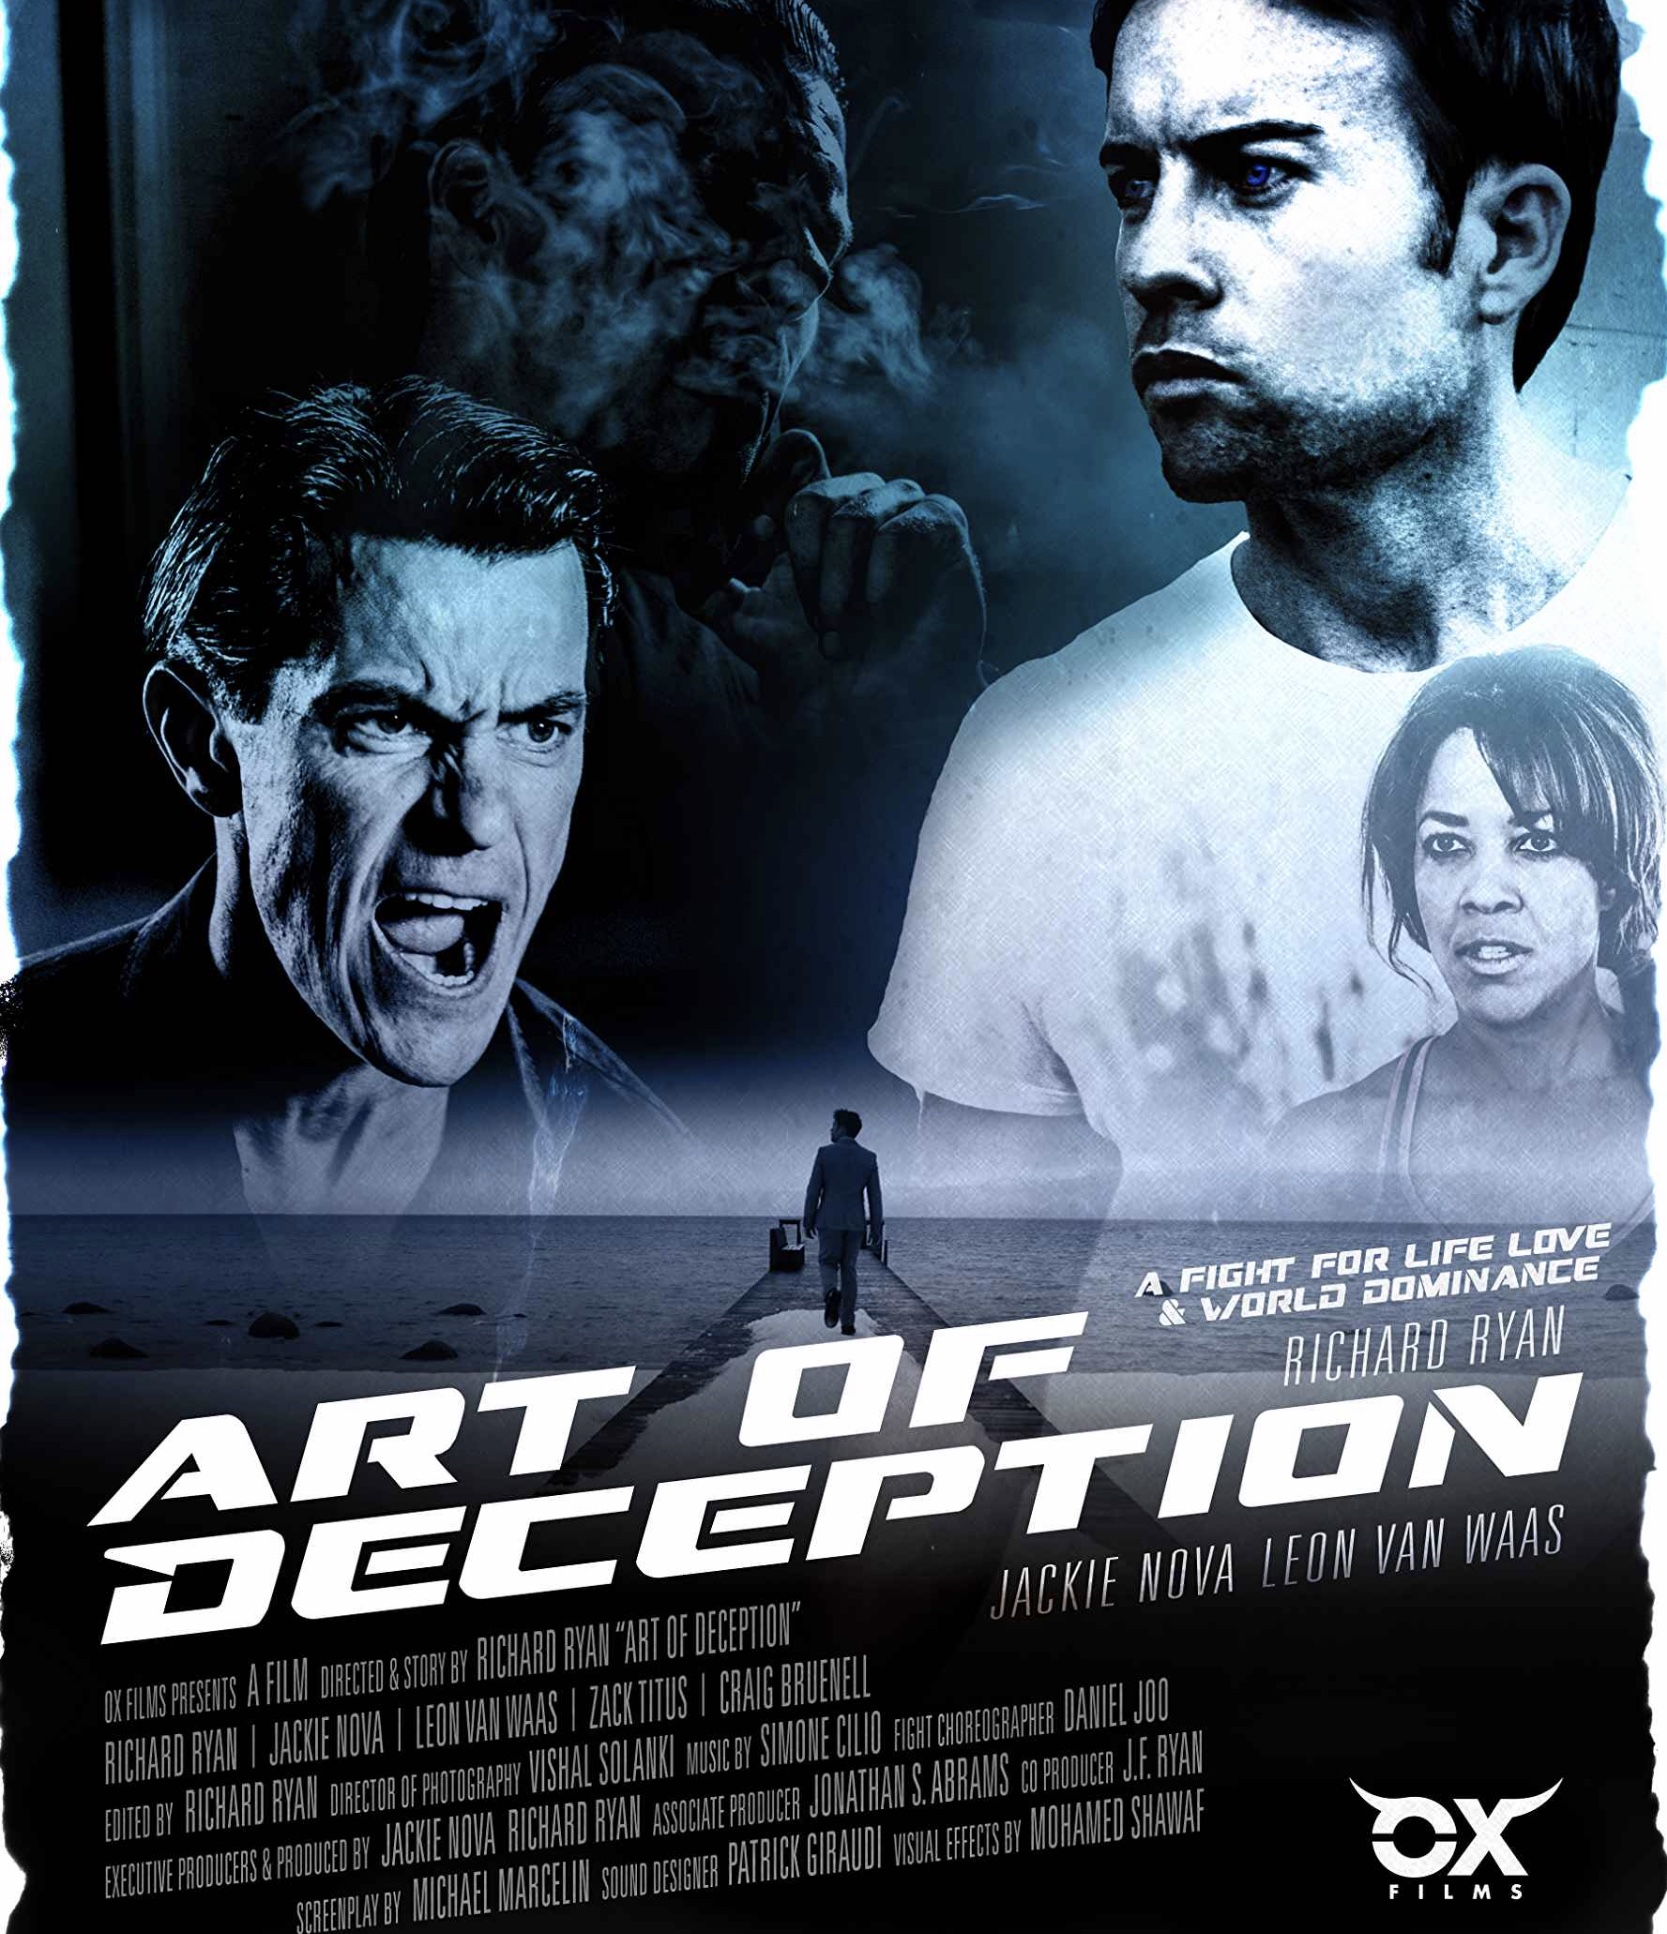 Art of Deception Image